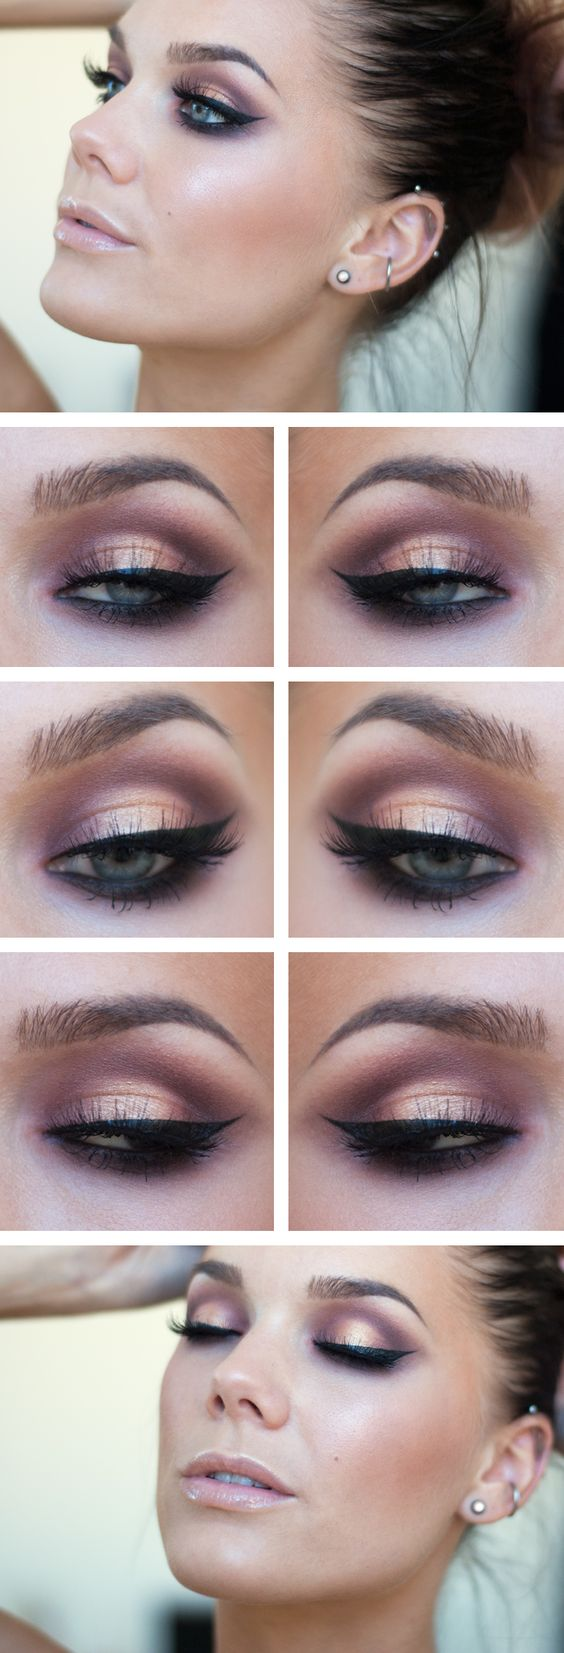 Simple Yet Stylish Light Makeup Ideas to Try for Daily Occasions